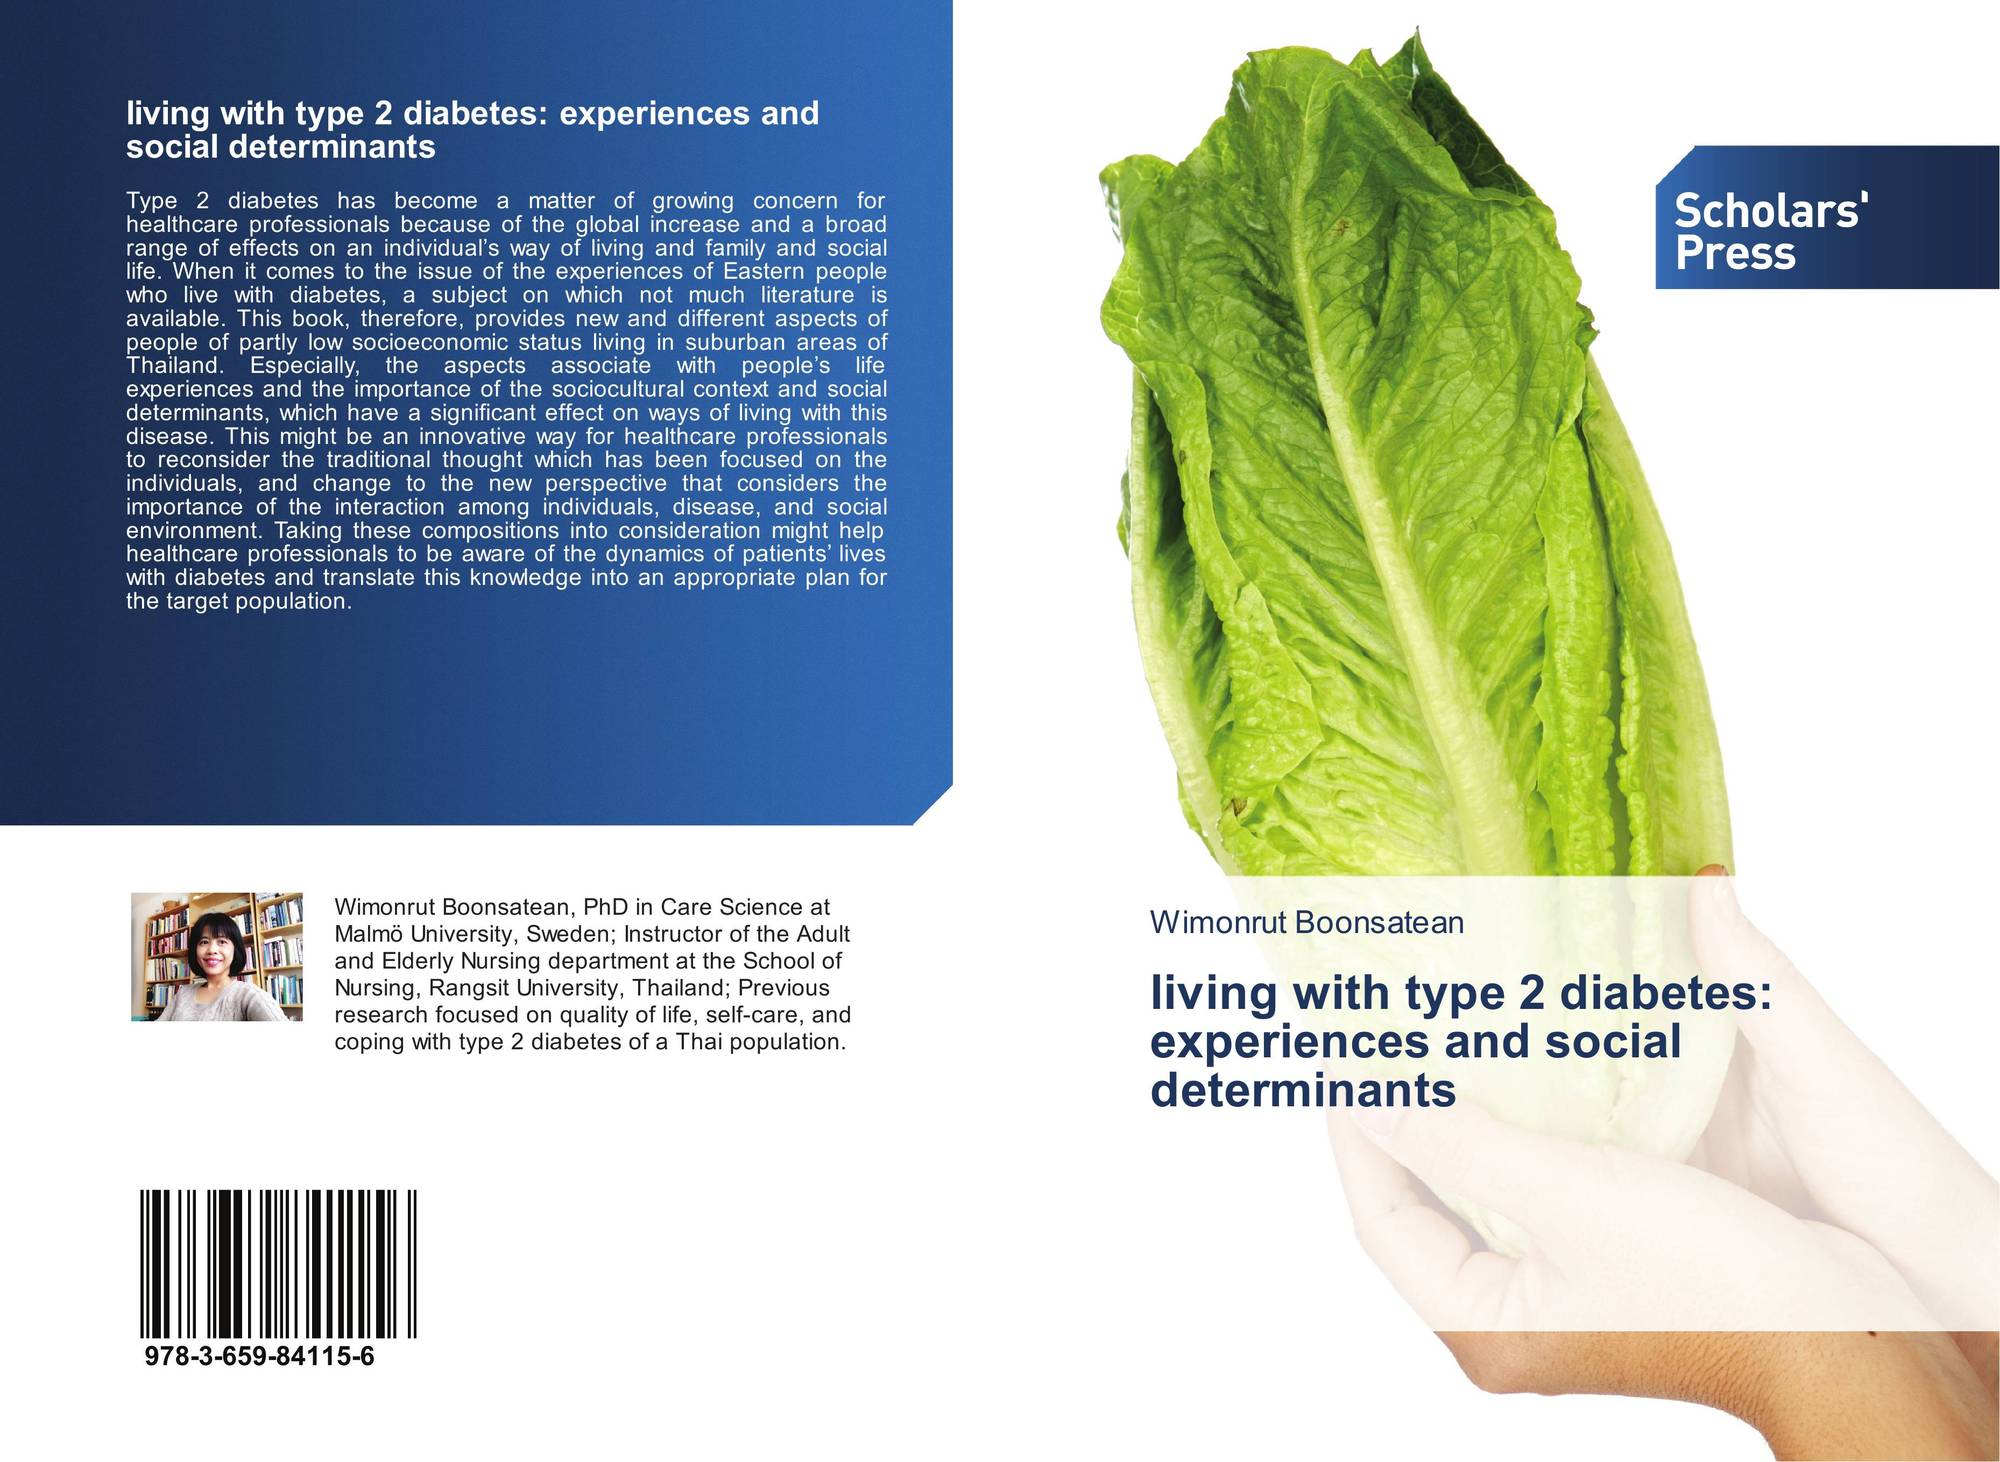 a study on the social determinants of health and disease prevention The social determinants of health are linked to the economic and social conditions and their distribution among the population that influence individual and group differences in health status they are health promoting factors found in one's living and working conditions.